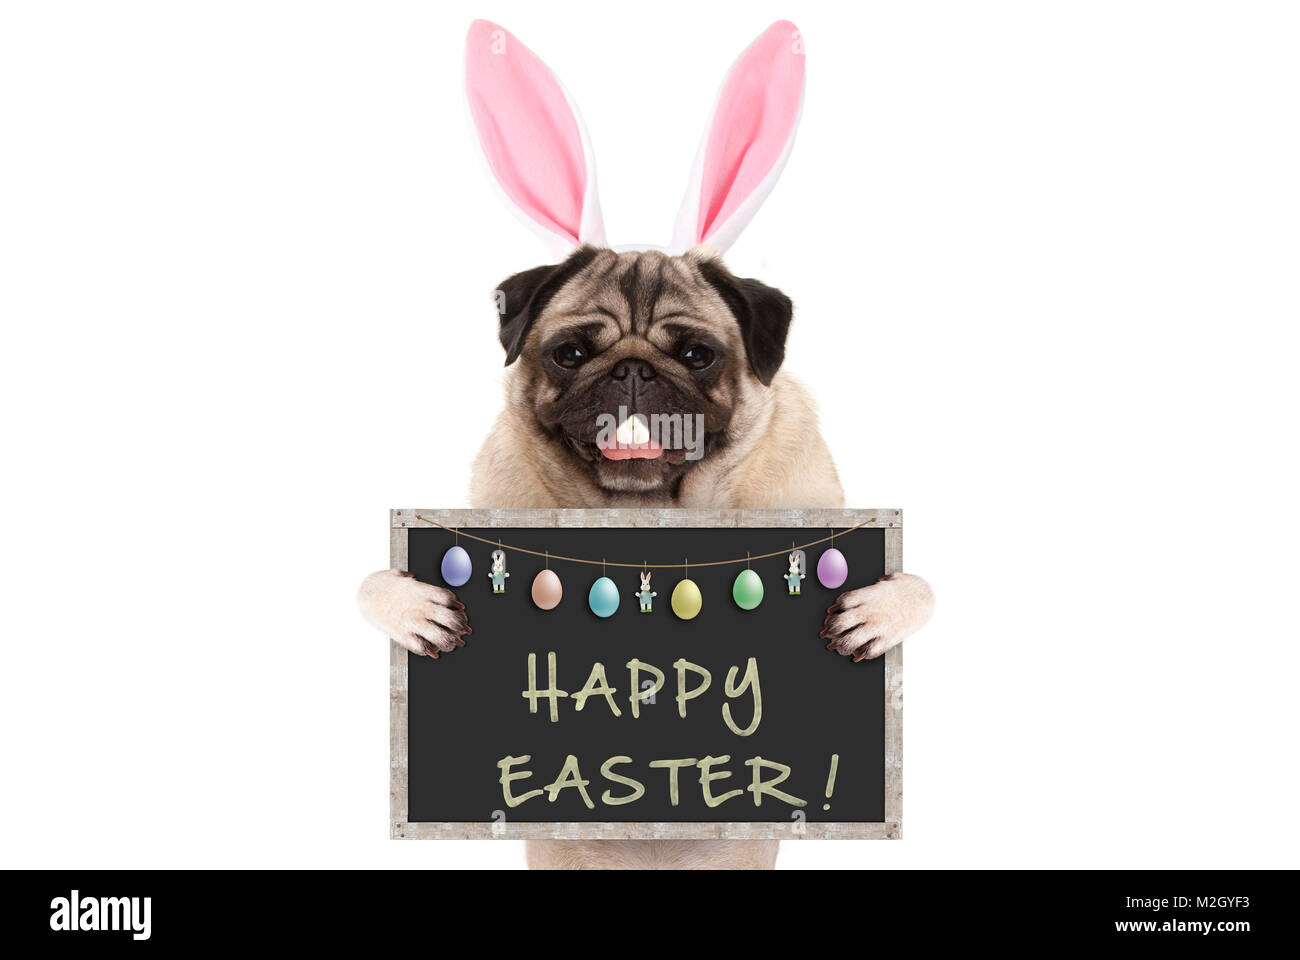 Easter bunny pug puppy dog with ears, eggs and blackboard with text happy easter, isolated on white background - Stock Image